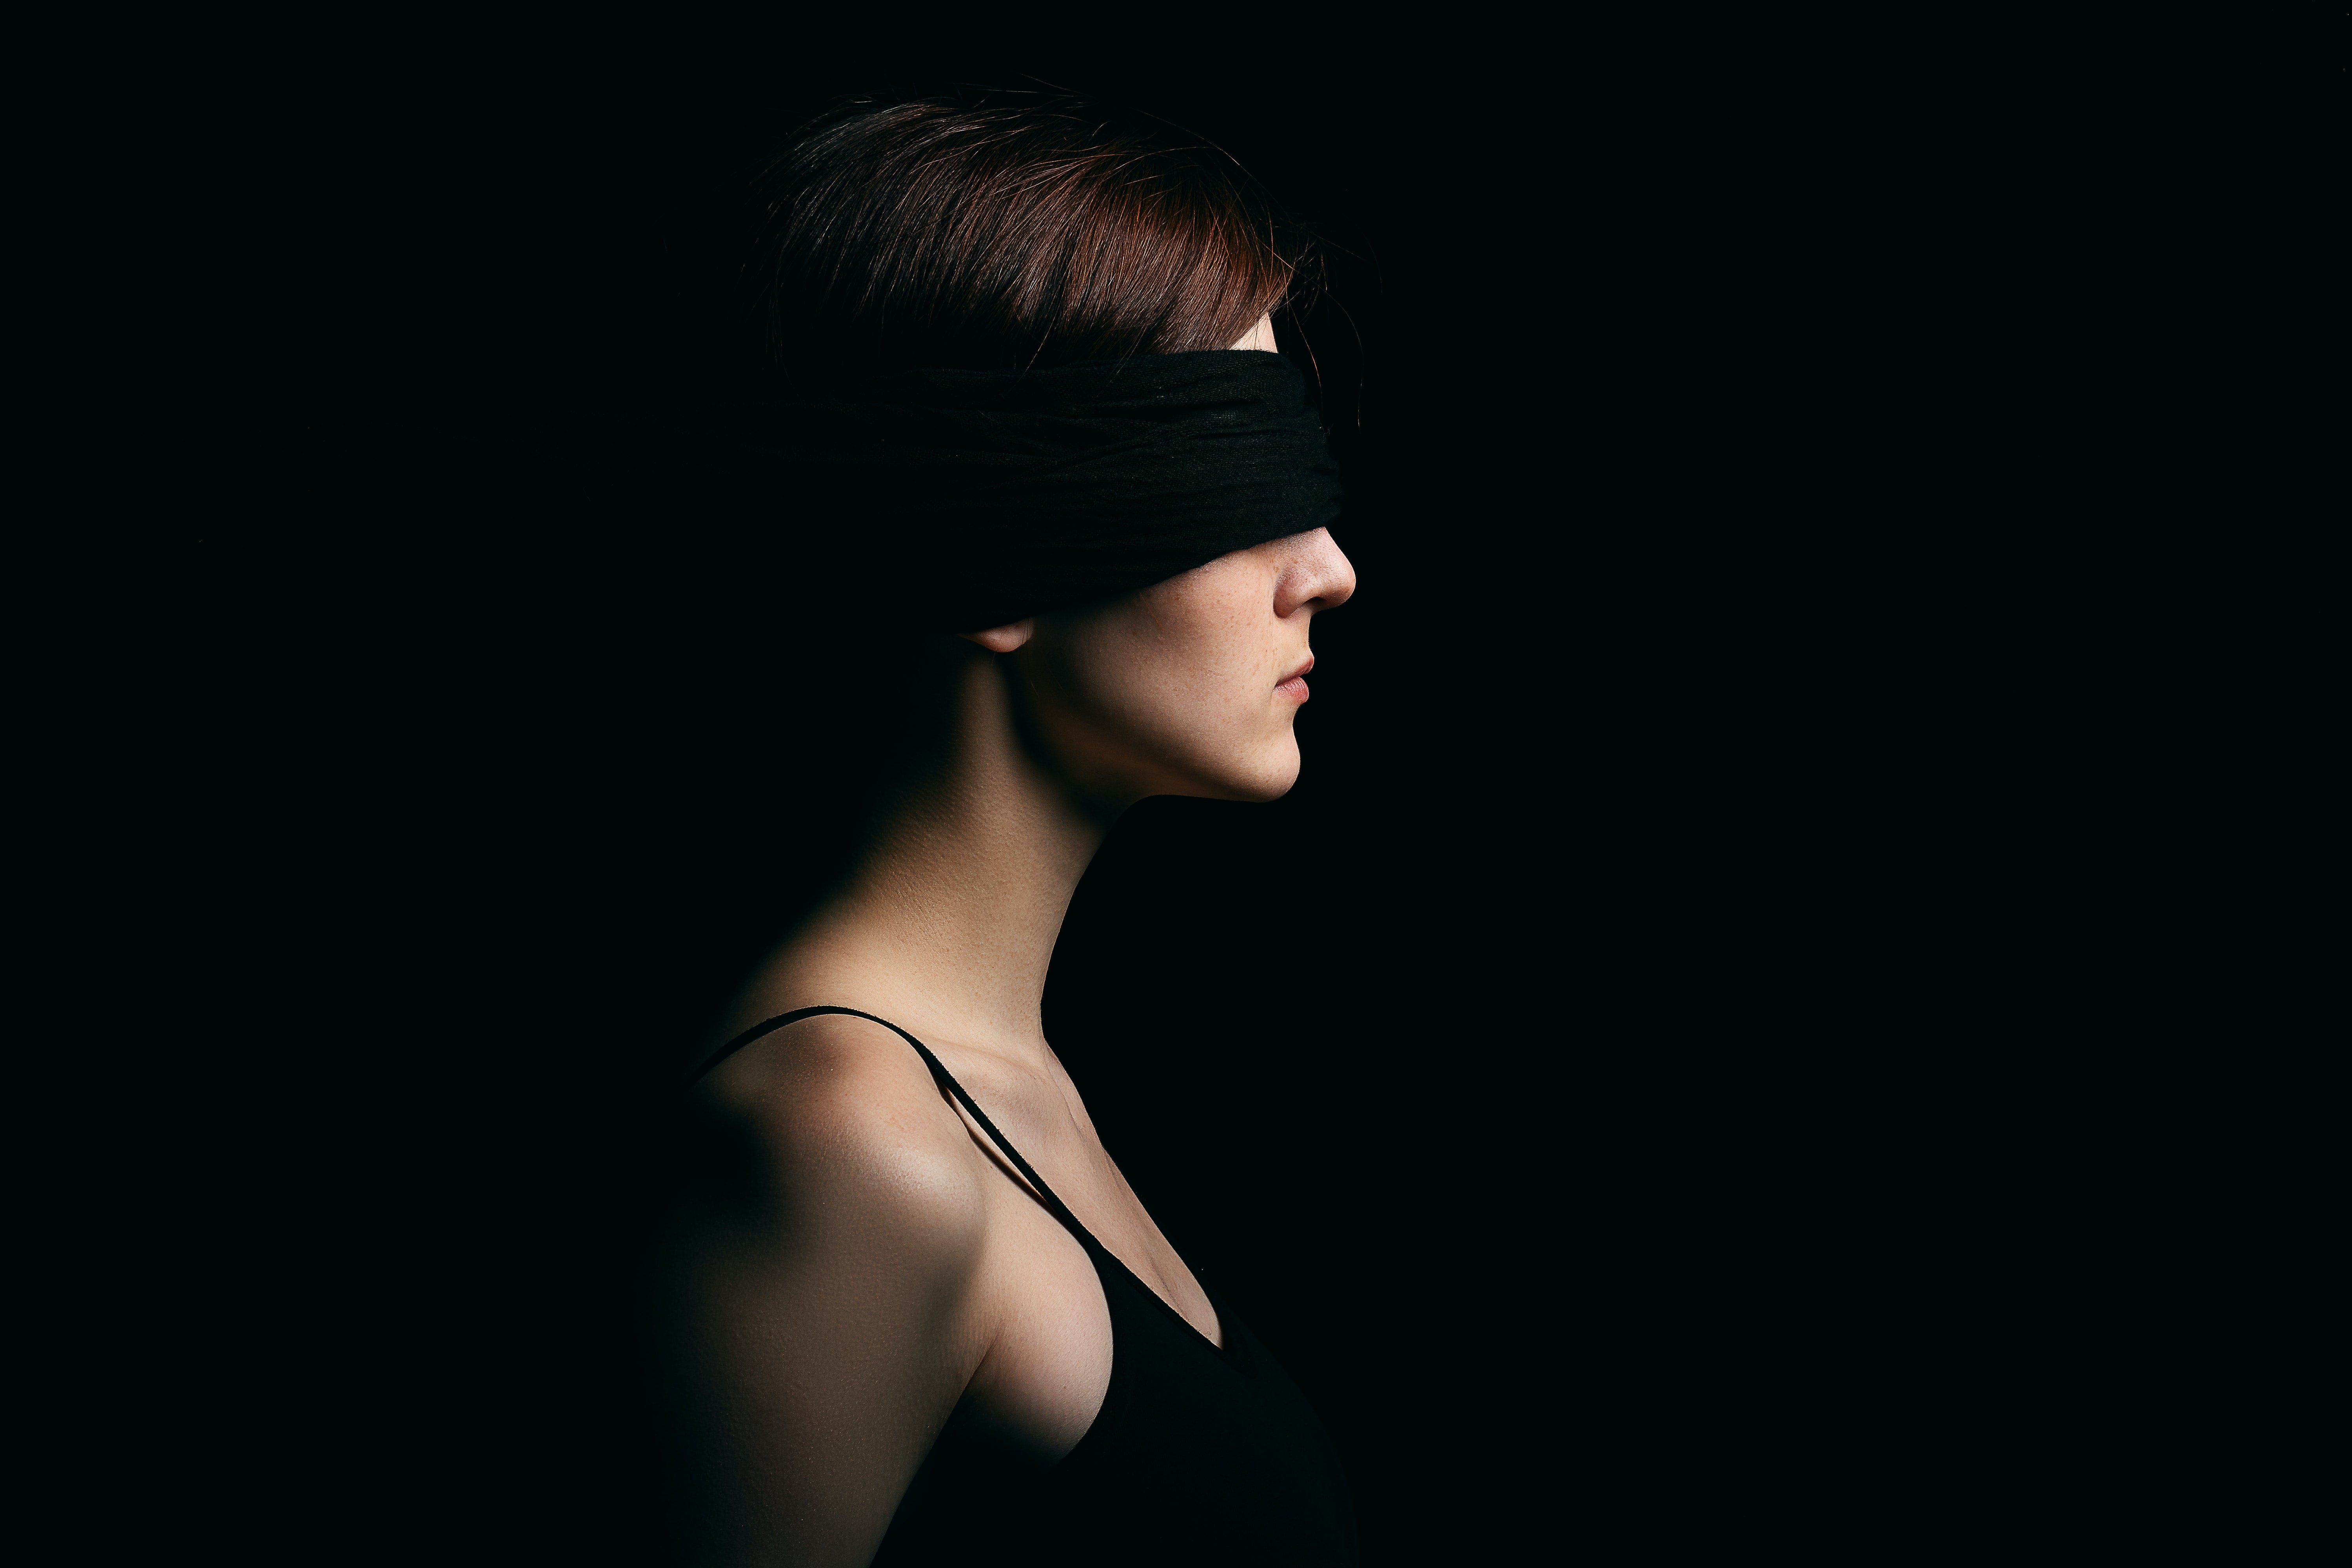 A blindfolded woman against black